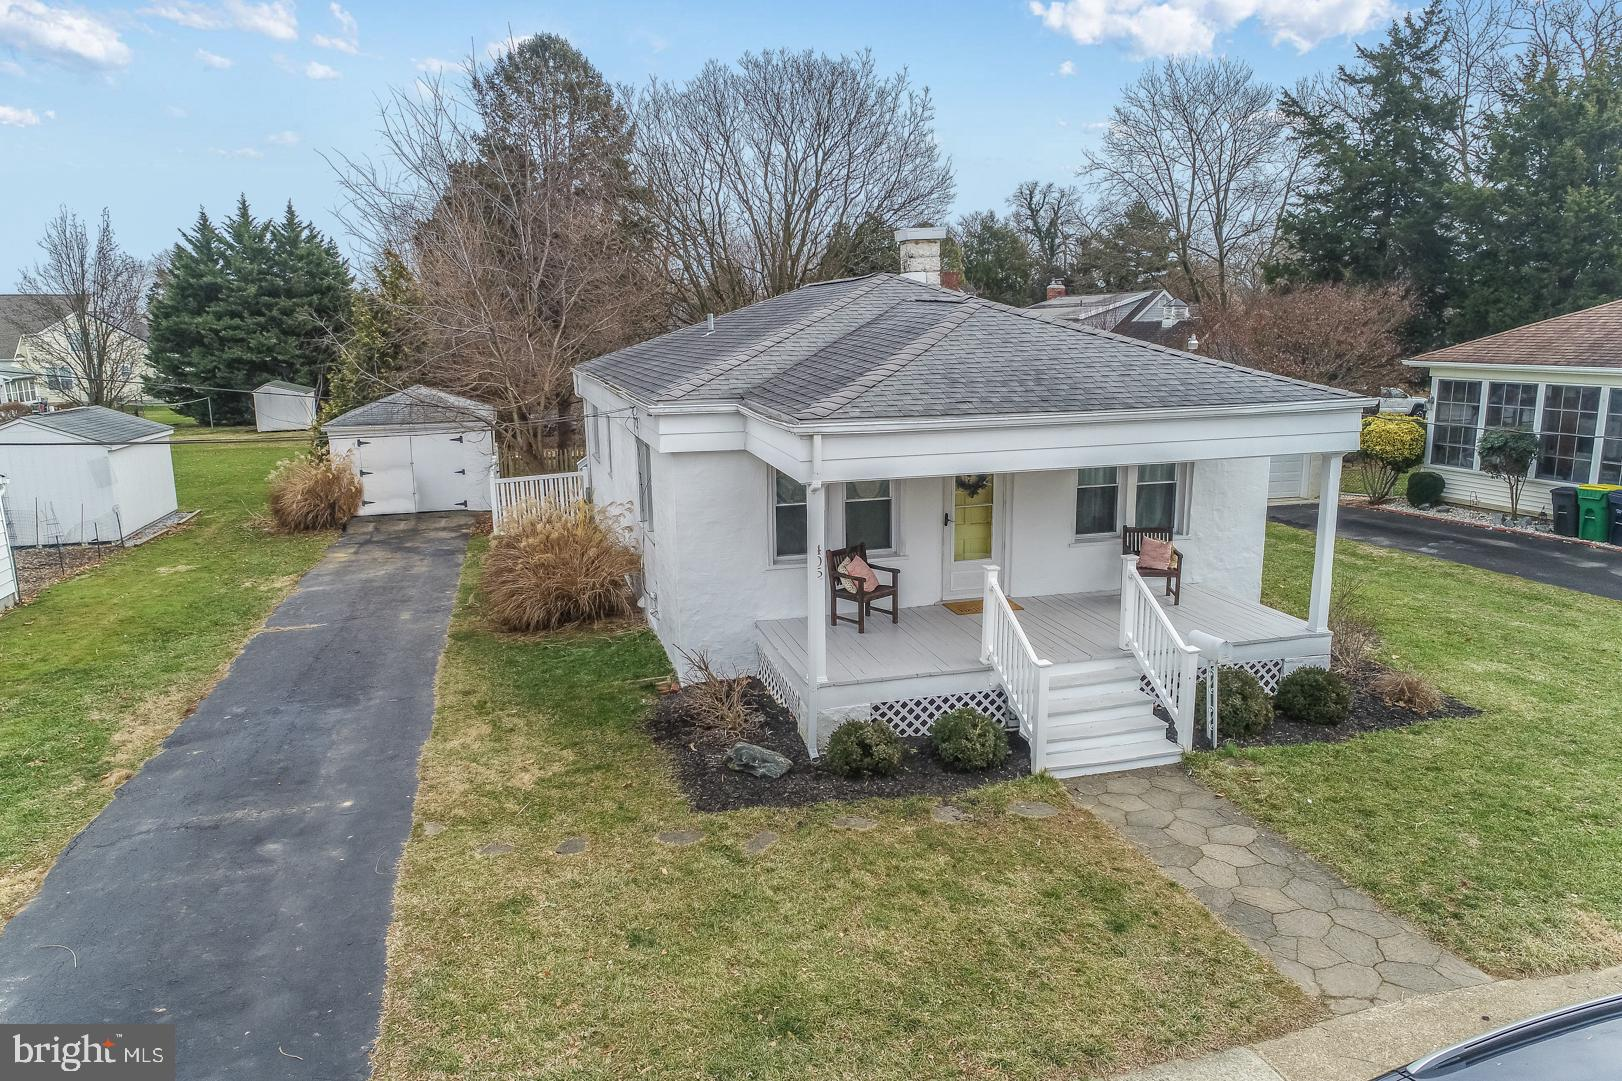 Beautifully kept, 3 bed, 1 bath craftsman style bungalow.  Enjoy some time outside on the full front